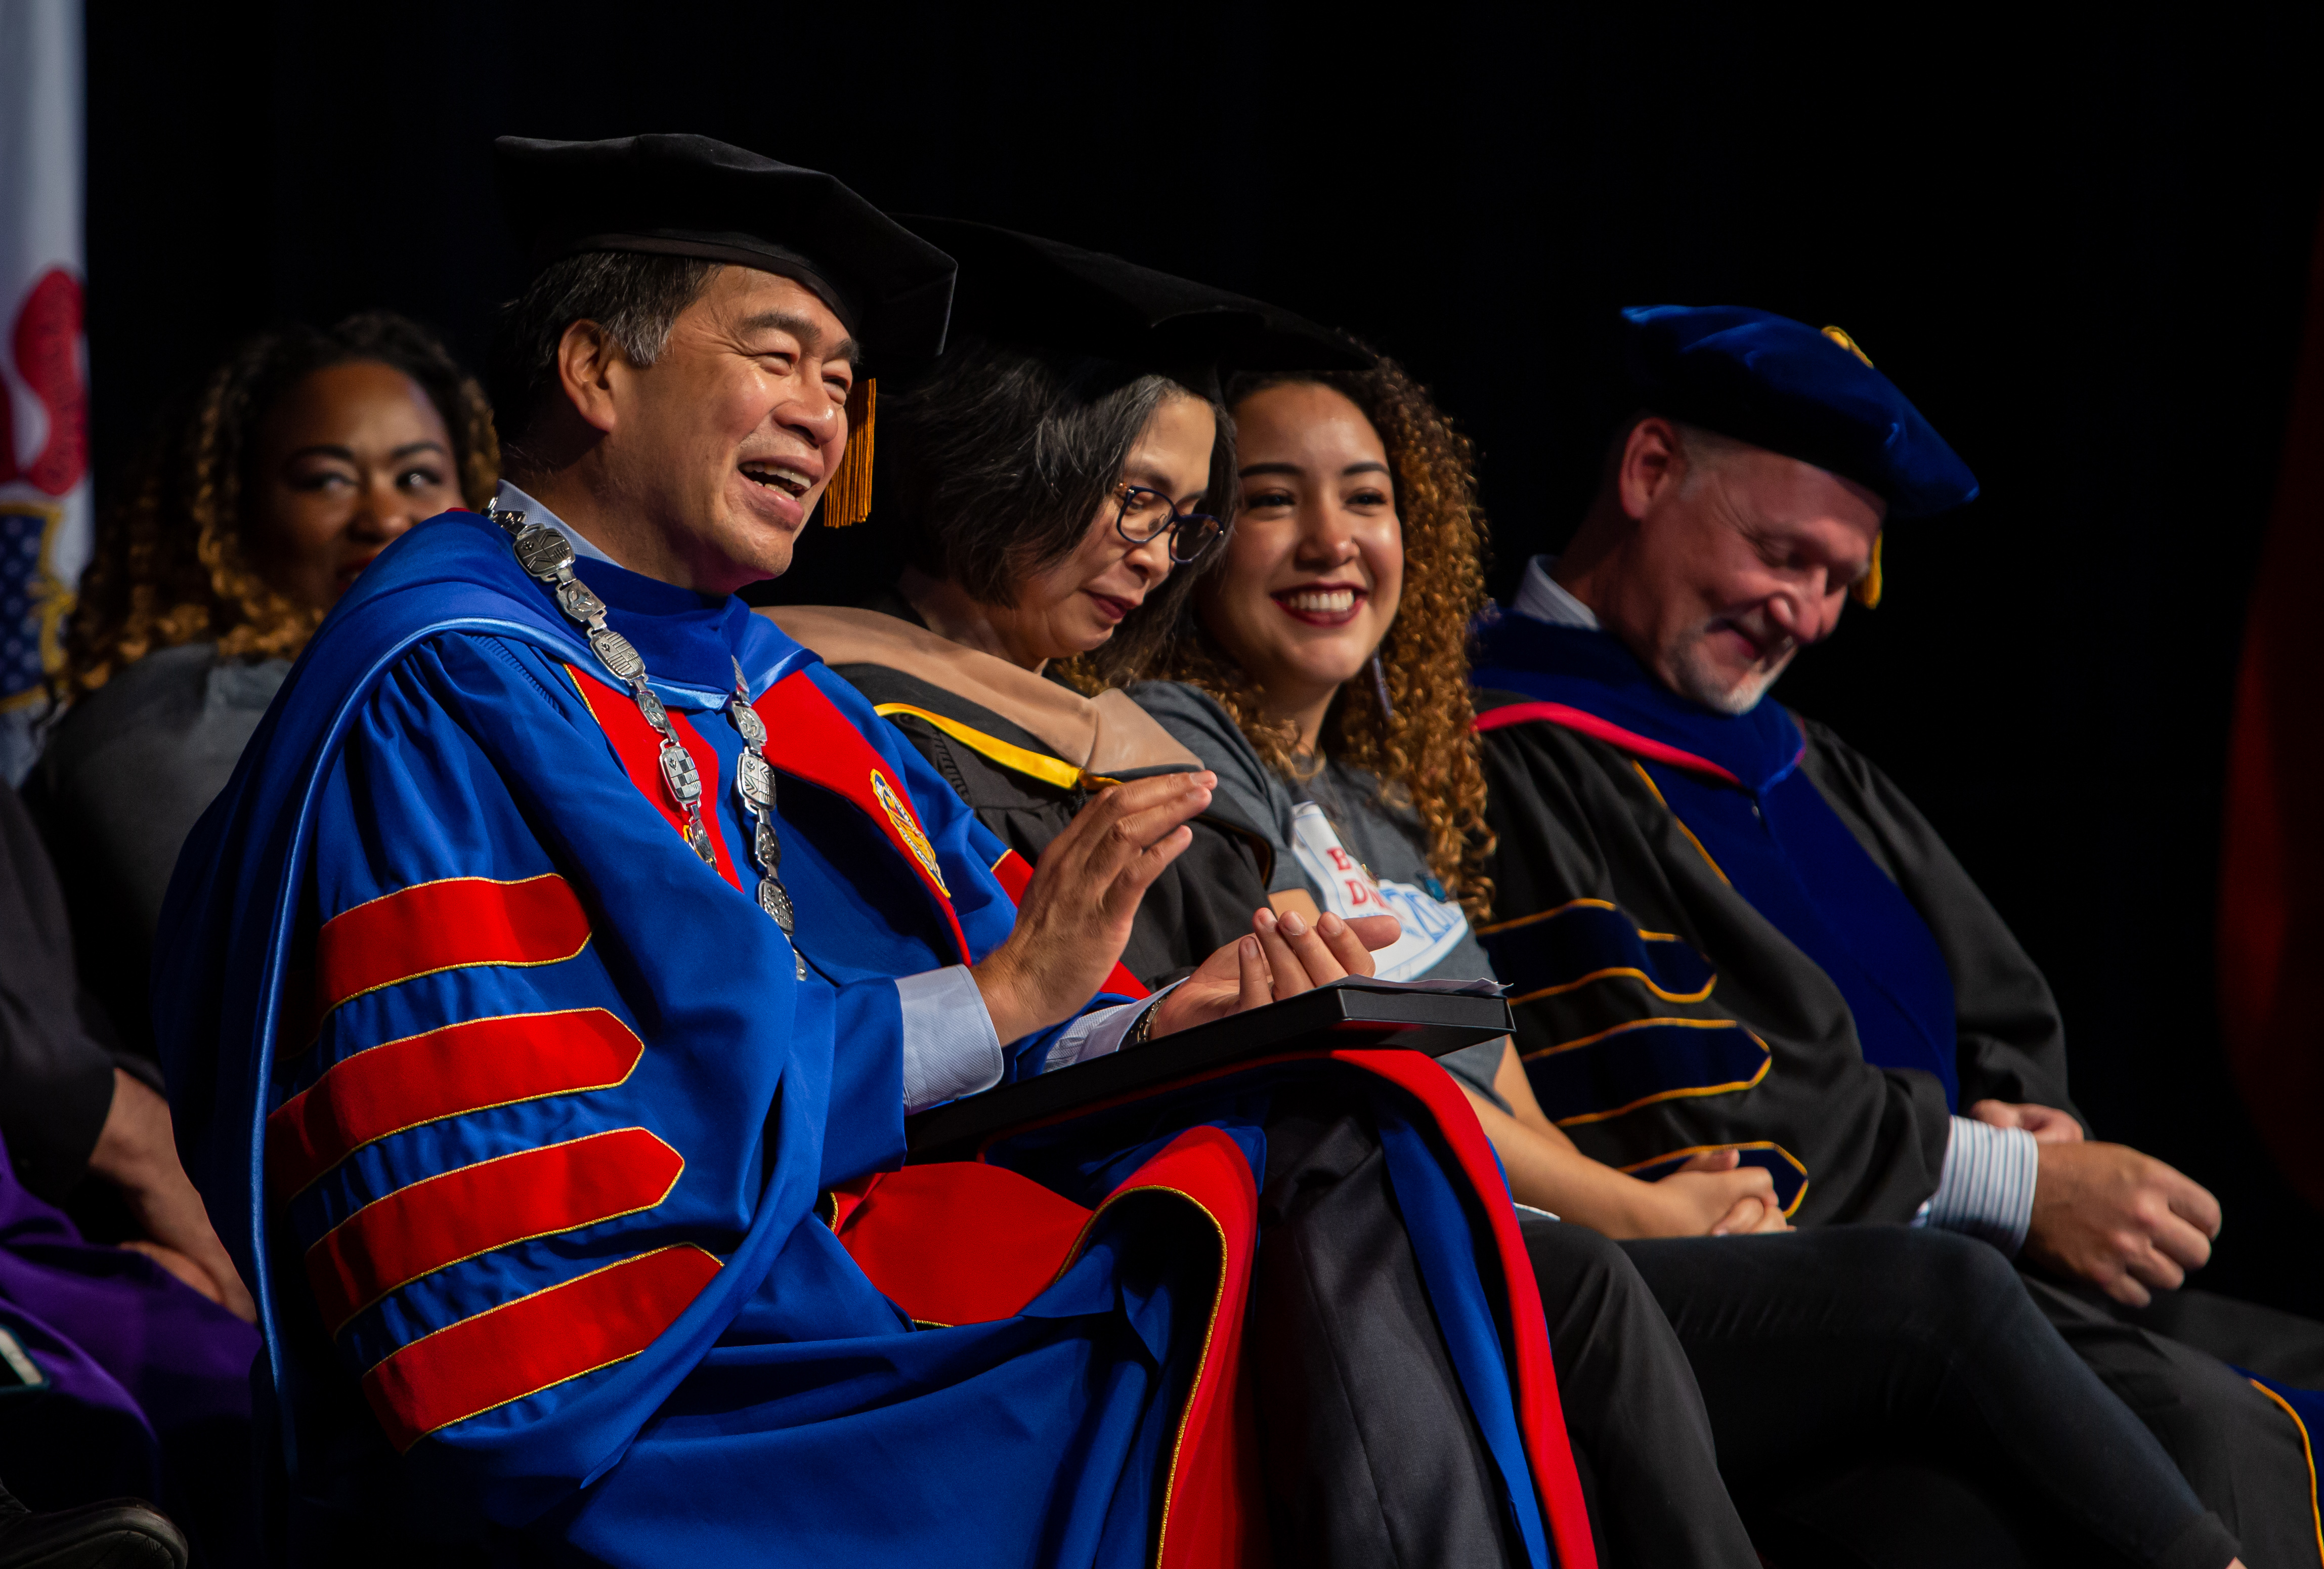 Left to right, A. Gabriel Esteban, Ph.D., president of DePaul University, his wife Josephine, Gisselle Cervantes, SGA president, and Gene Zdziarski, vice president for Student Affairs, enjoy a moment of humor during the ceremony. (DePaul University/Randall Spriggs)